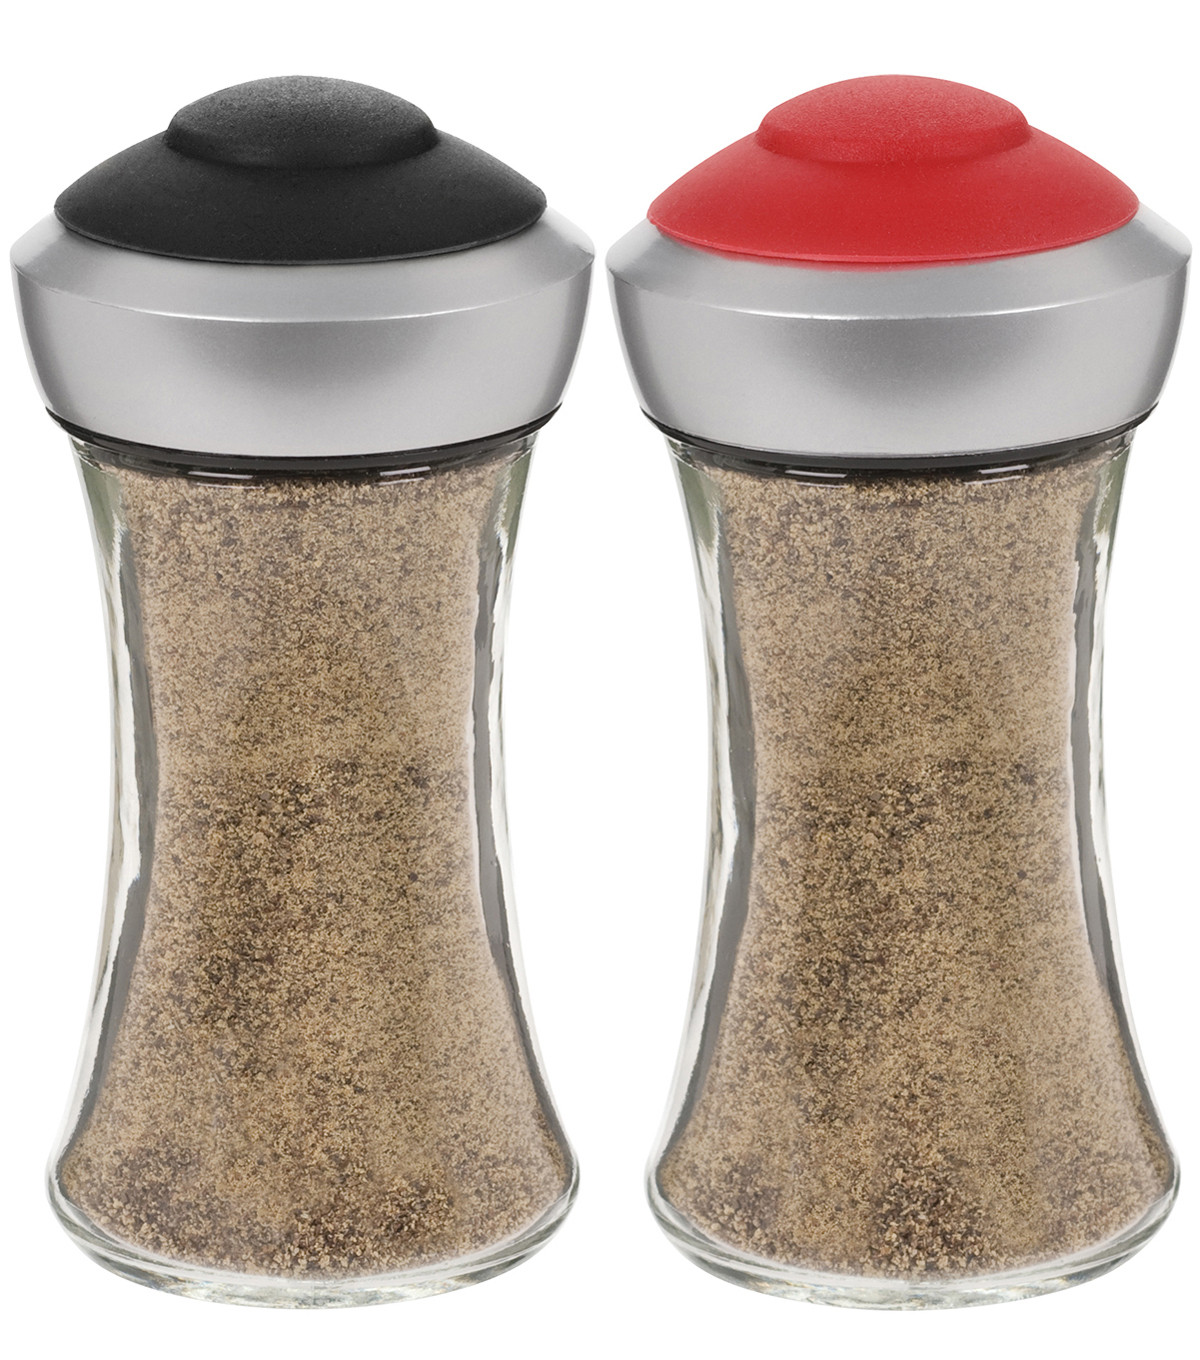 Salt and Pepper Shakers Black & Red